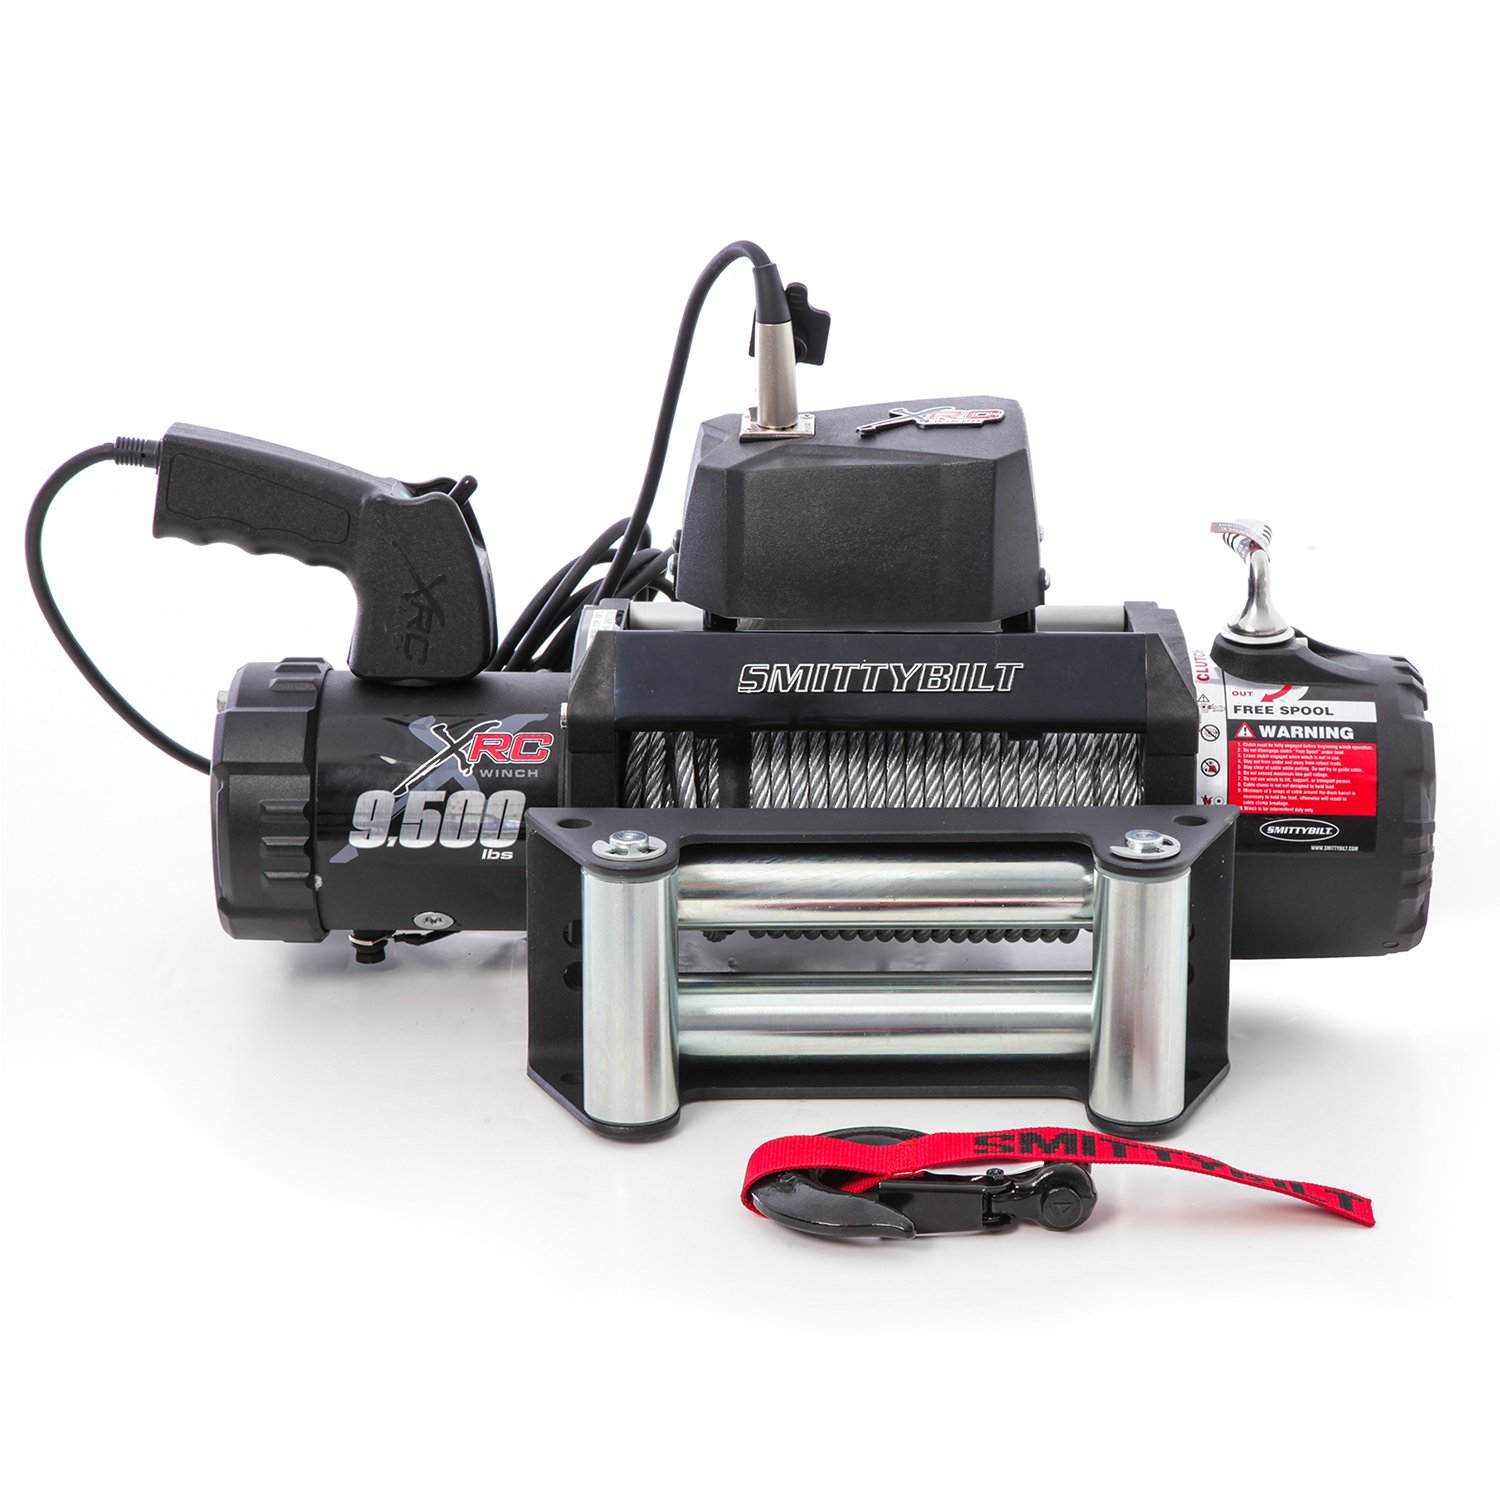 71GZqL ZeFL._SL1500_ amazon com pulling & lifting material handling products Portable Electric Winch 110V at bayanpartner.co